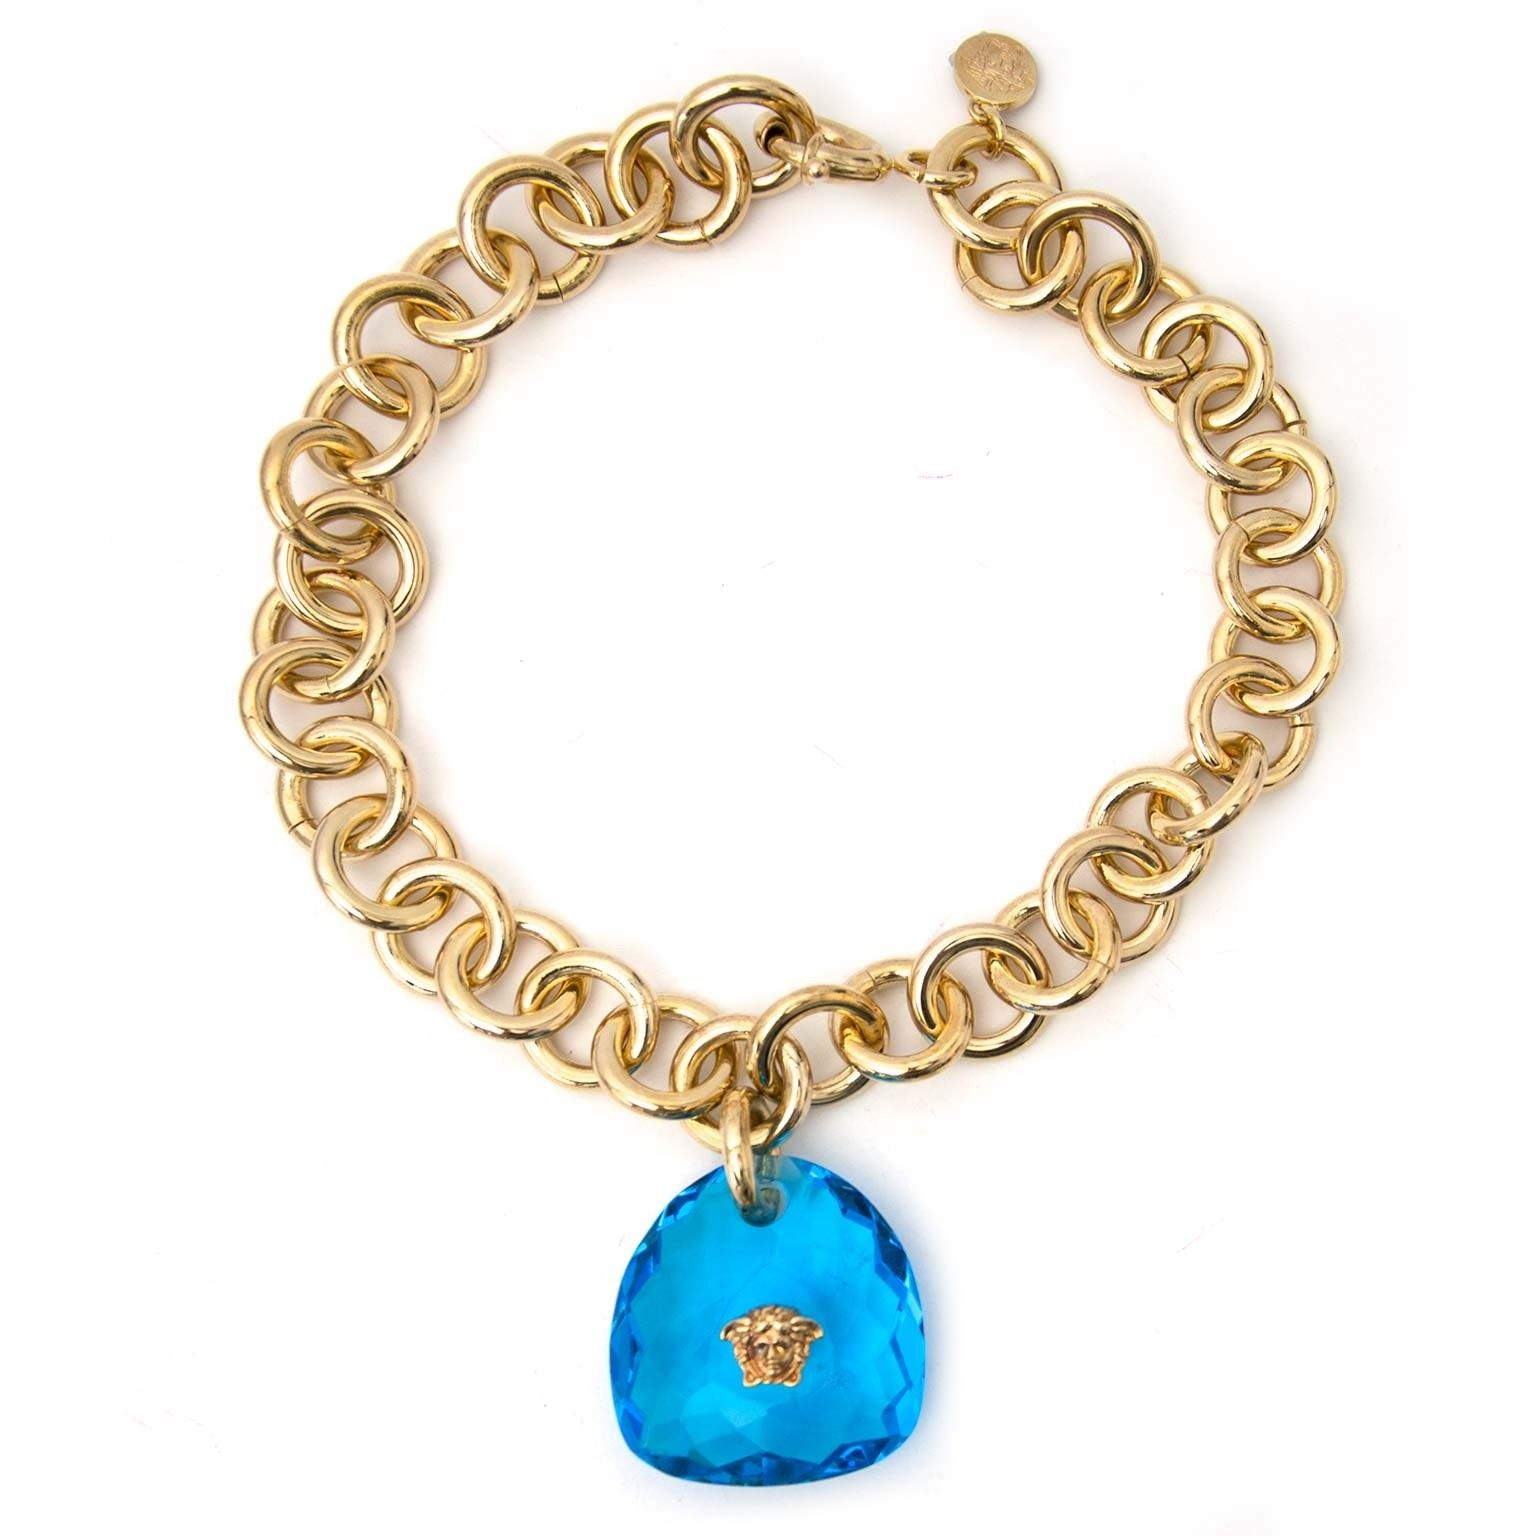 b2184b221706d Versace Gold Chain Blue Stone Medusa Necklace Buy authentic designer ...